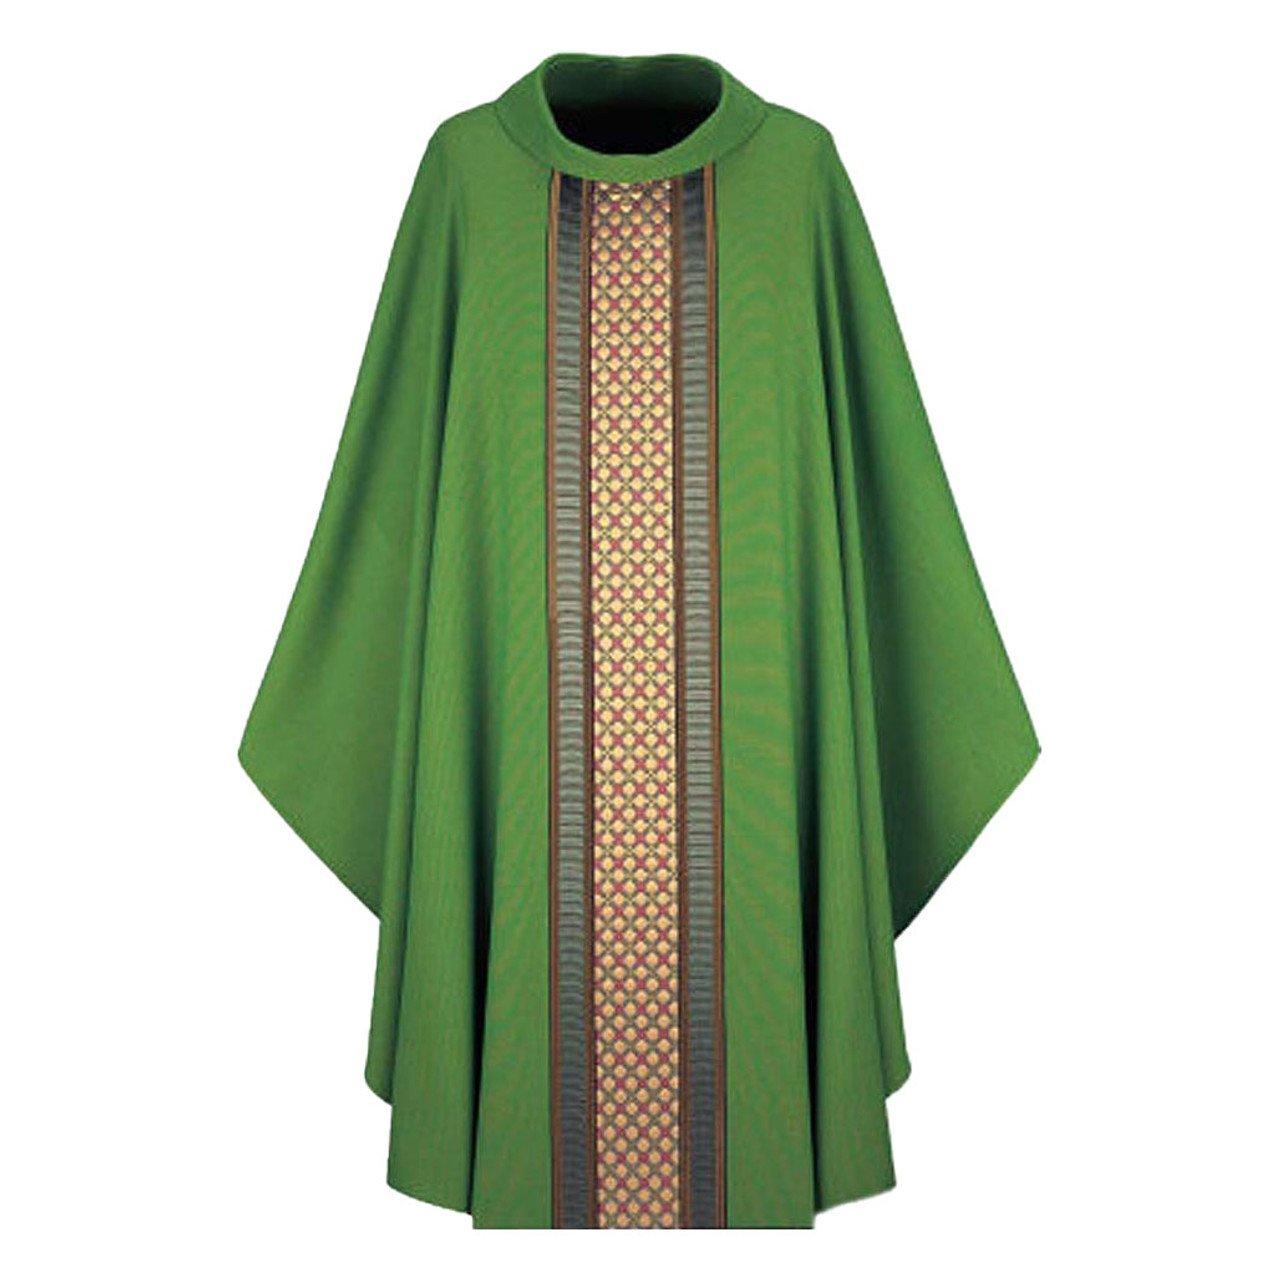 2478 Green Chasuble from Slabbinck